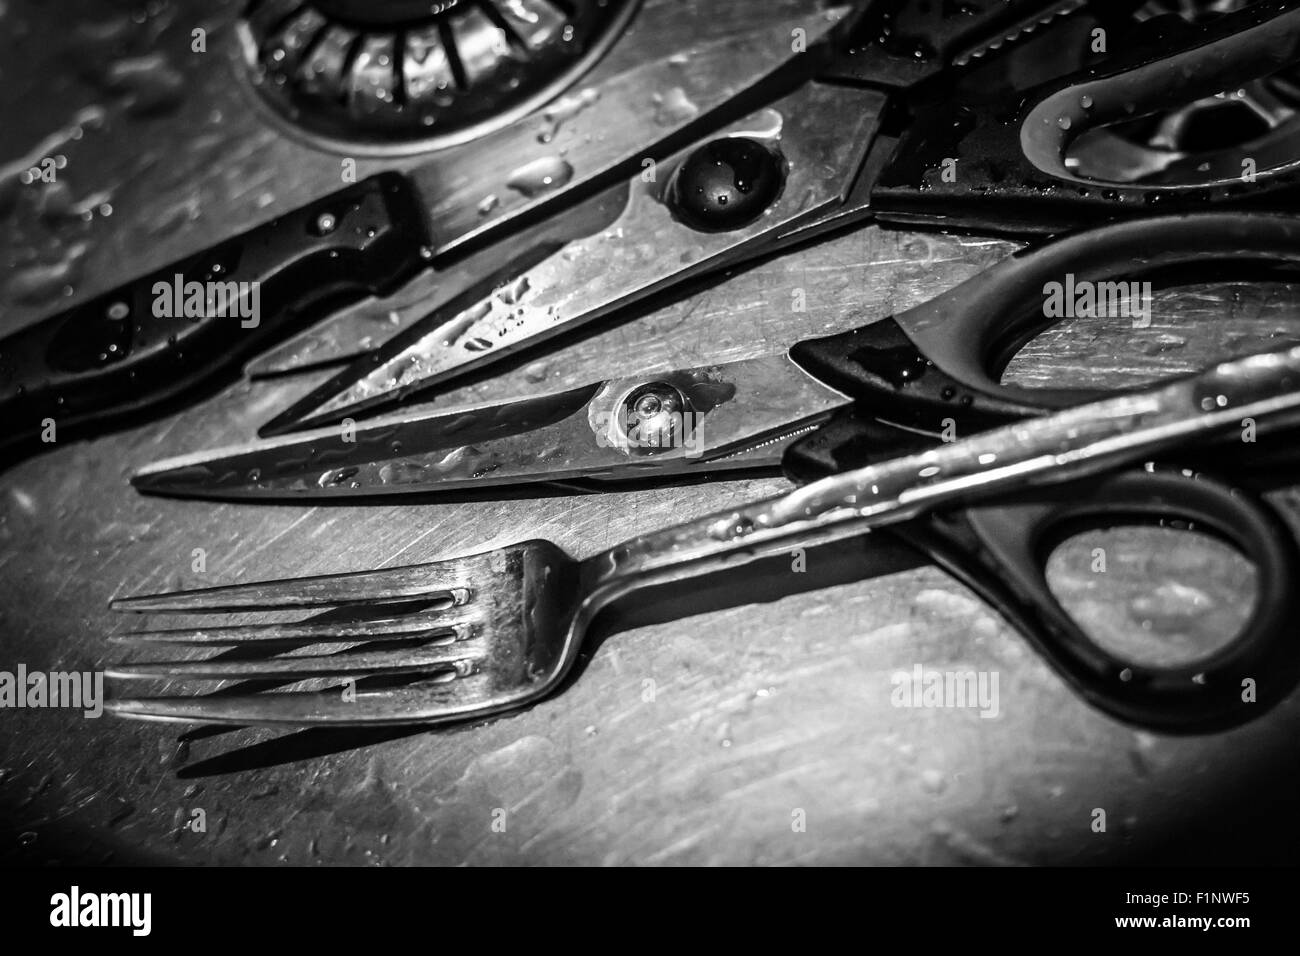 Group of four water splashed kitchen utensils resting in a metallic household sink - Stock Image